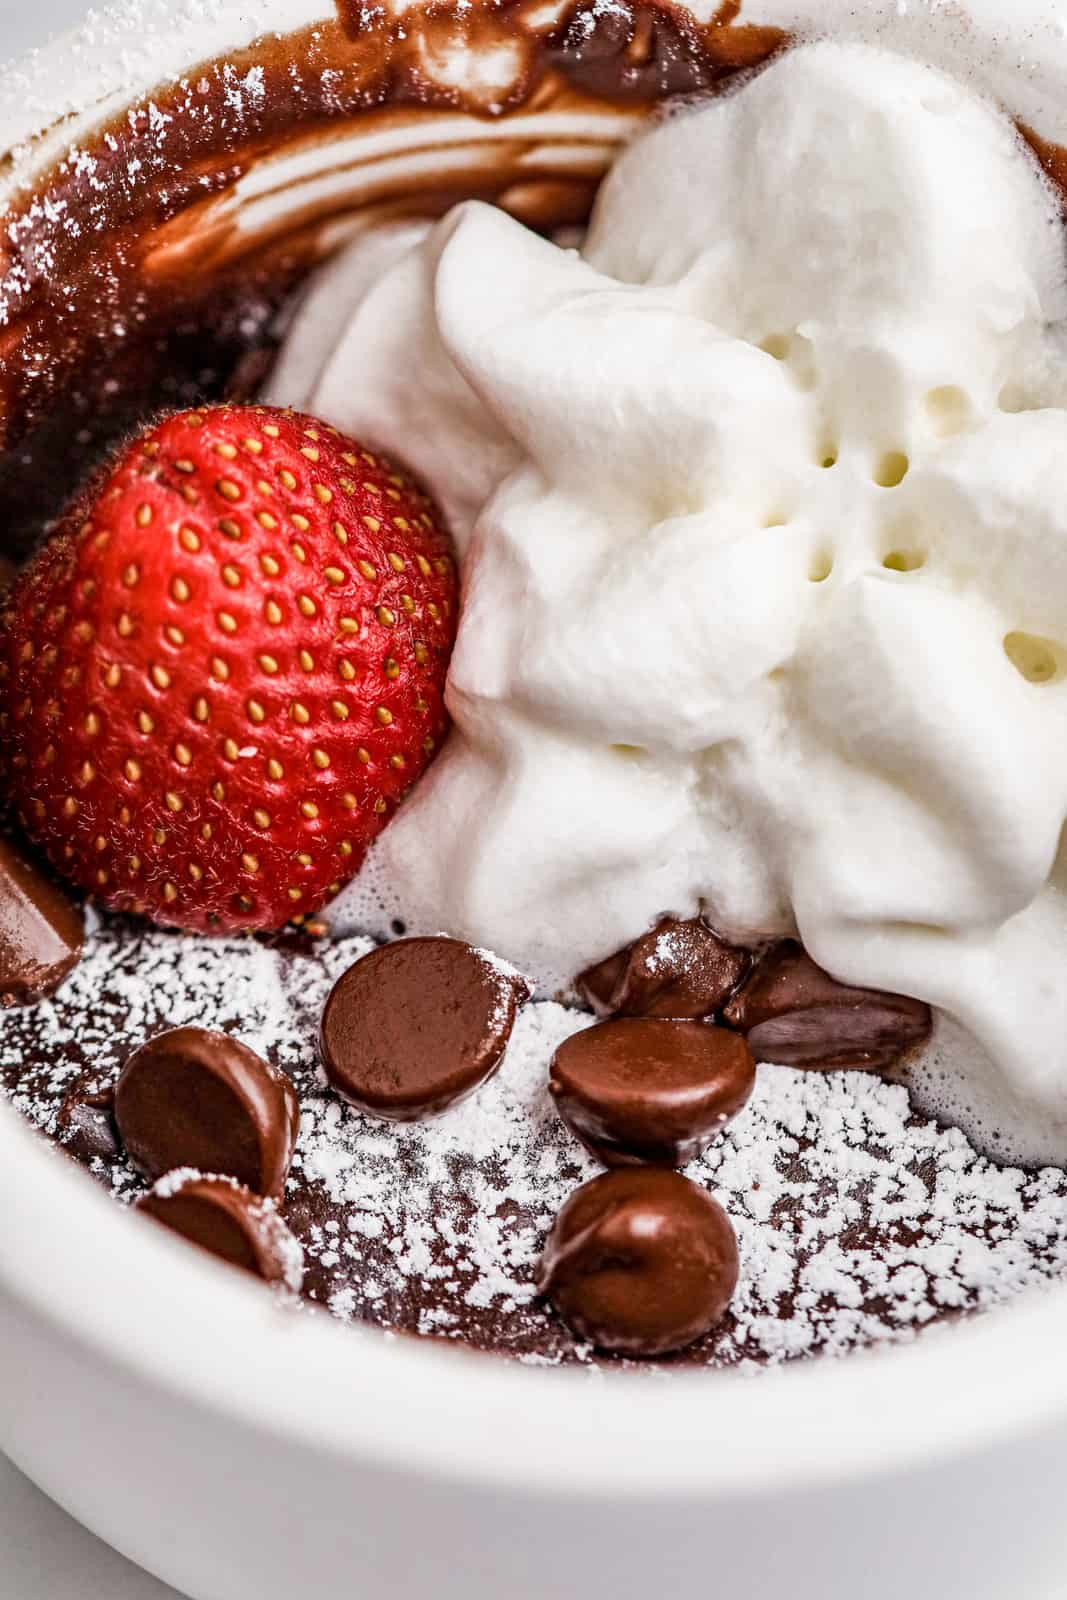 Very close up of Brownie in a Mug with powdered sugar, strawberry and whipped cream